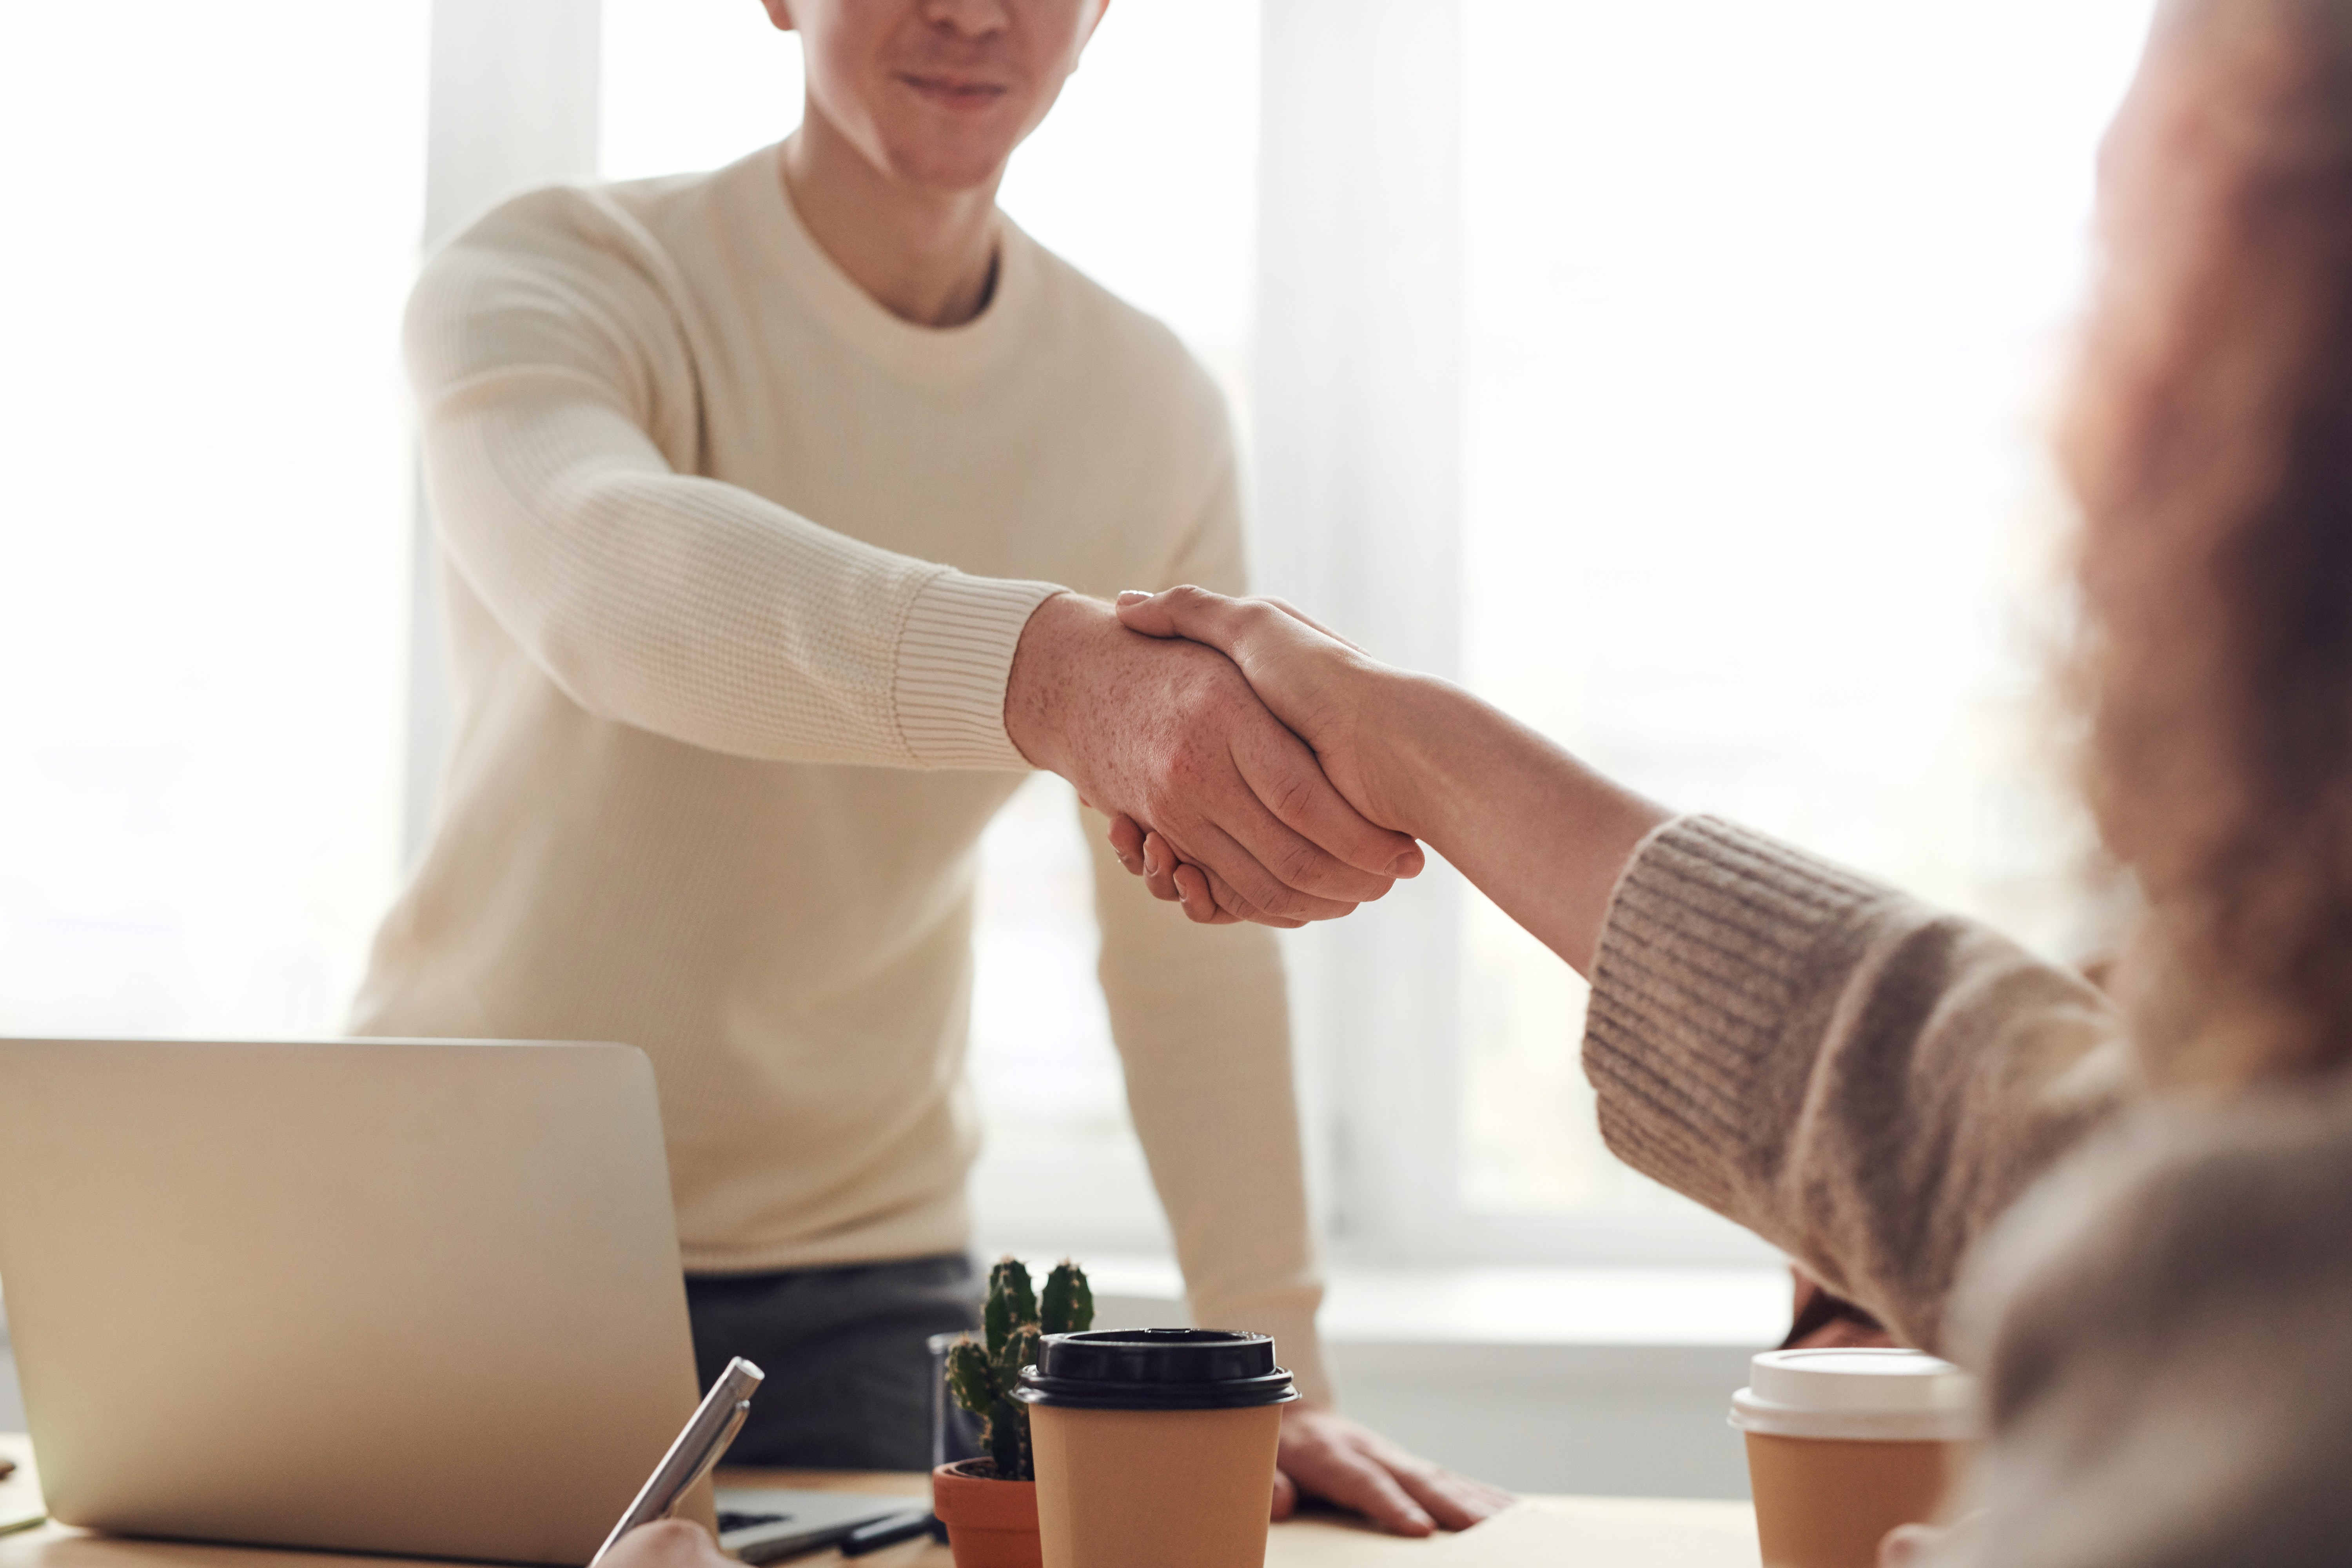 Background image of two people shaking hands